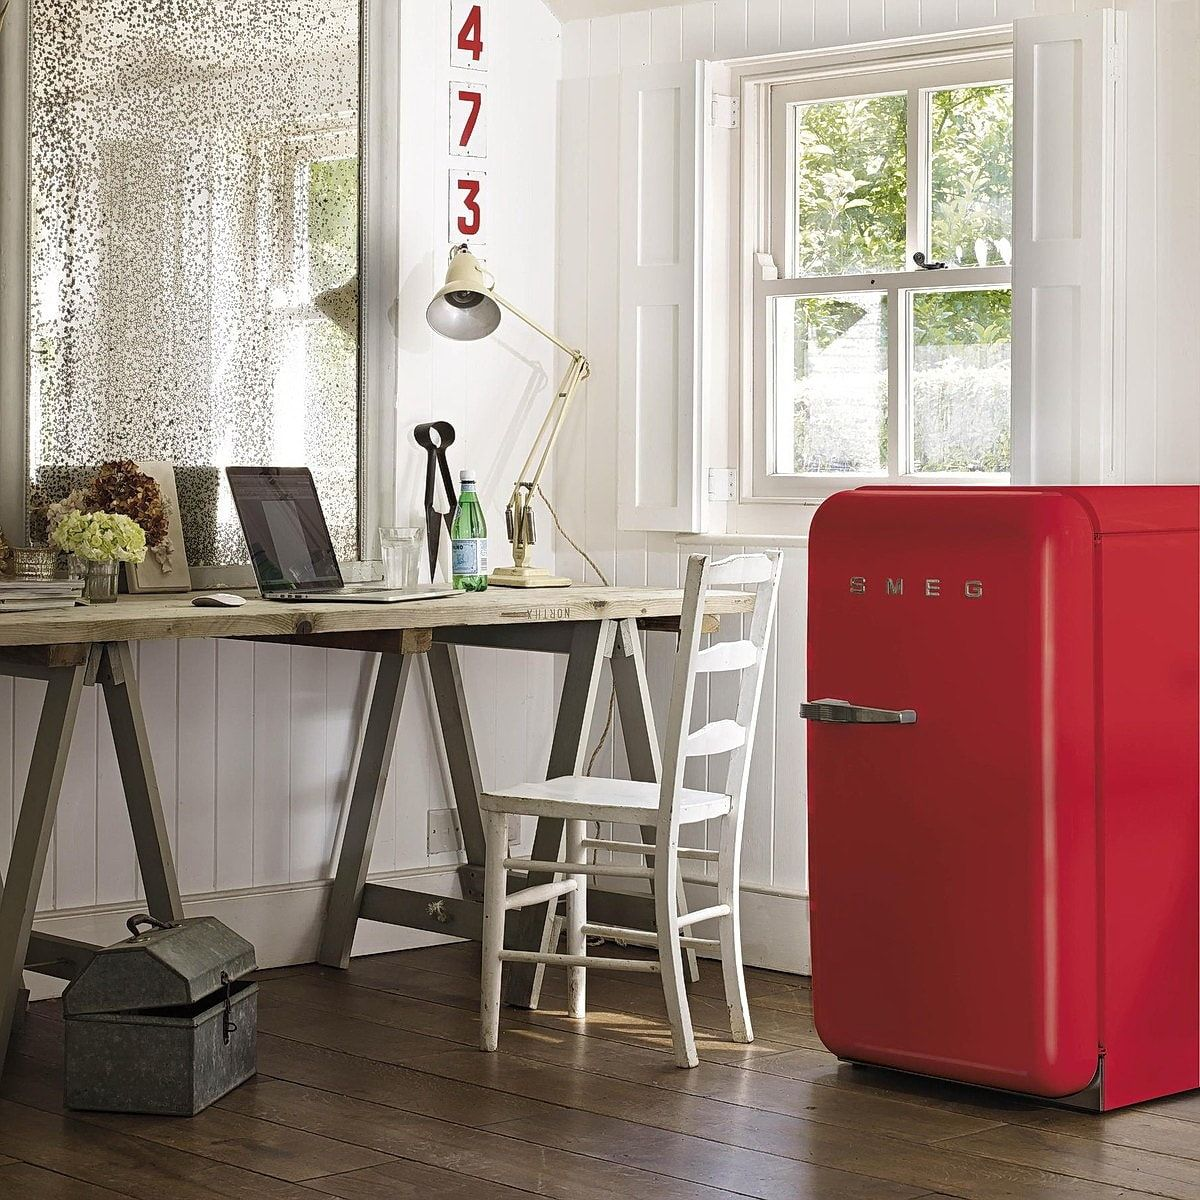 Small red fridge in white Casual styled cottage